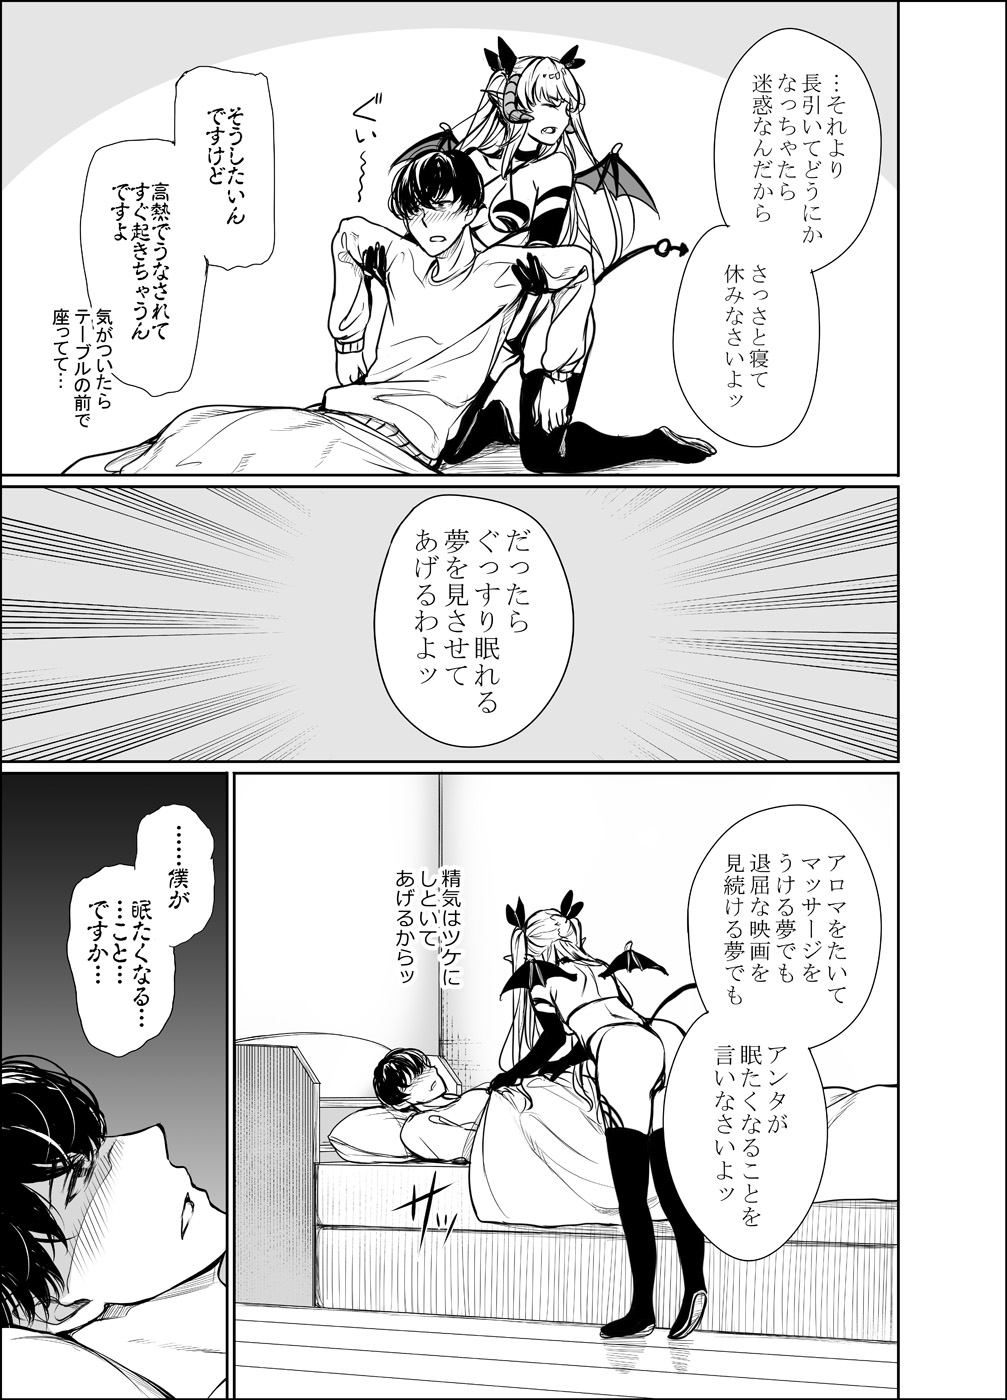 1boy 1girl bare_shoulders bed boots bow comic demon_girl demon_horns demon_tail demon_wings dragging emphasis_lines eyebrows_visible_through_hair gentsuki greyscale hair_bow highres horns kuroki_tsutomu lily_(gentsuki) long_hair monochrome original pointy_ears revealing_clothes shaded_face sick speech_bubble succubus sweatshirt tail thick_eyebrows thigh-highs thigh_boots two_side_up wings